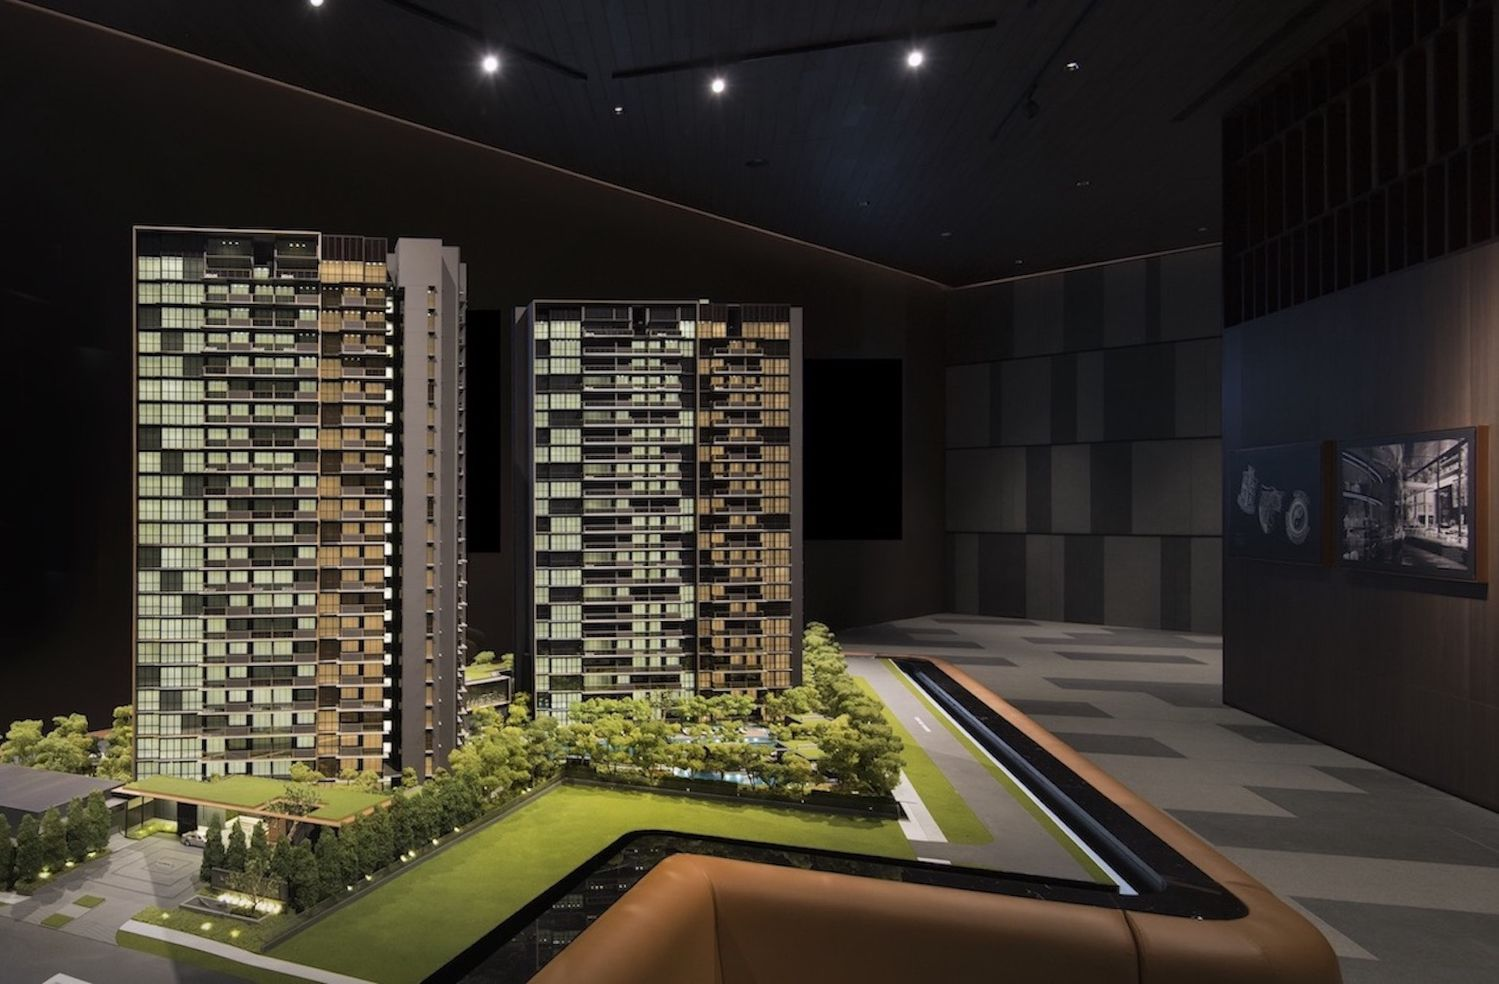 EDGEPROP SINGAPORE - Projects' sales galleries are not allowed to open until further notice, according to URA (Photo: Albert Chua/EdgeProp Singapore)